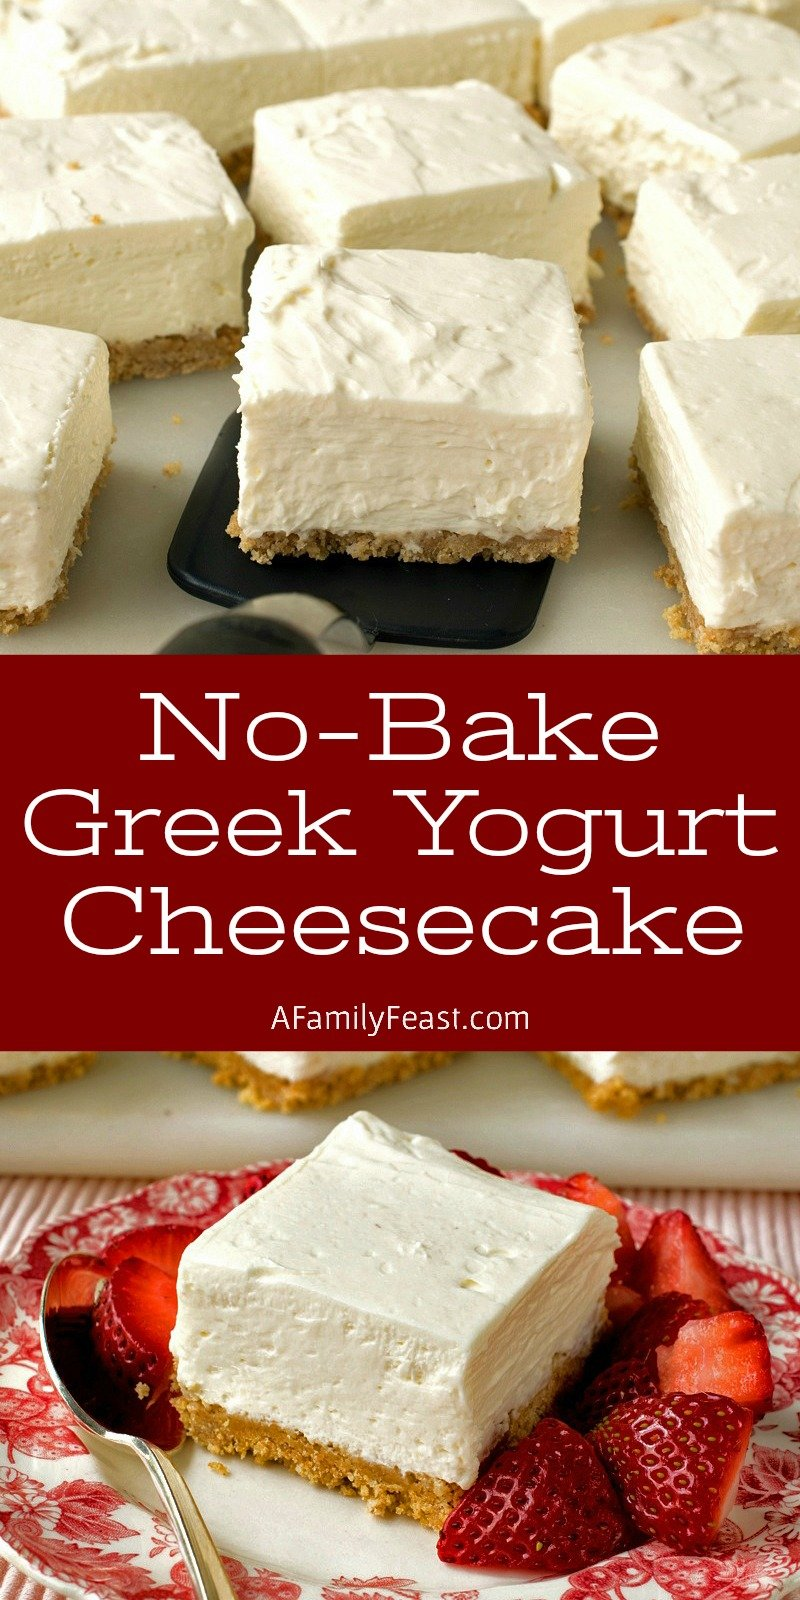 These No-Bake Greek Yogurt Cheesecake Squares are creamy and delicious with a wonderful tangy-sweet flavor thanks to the addition of whole-milk Greek yogurt and cream cheese. Your guests will love this easy dessert!